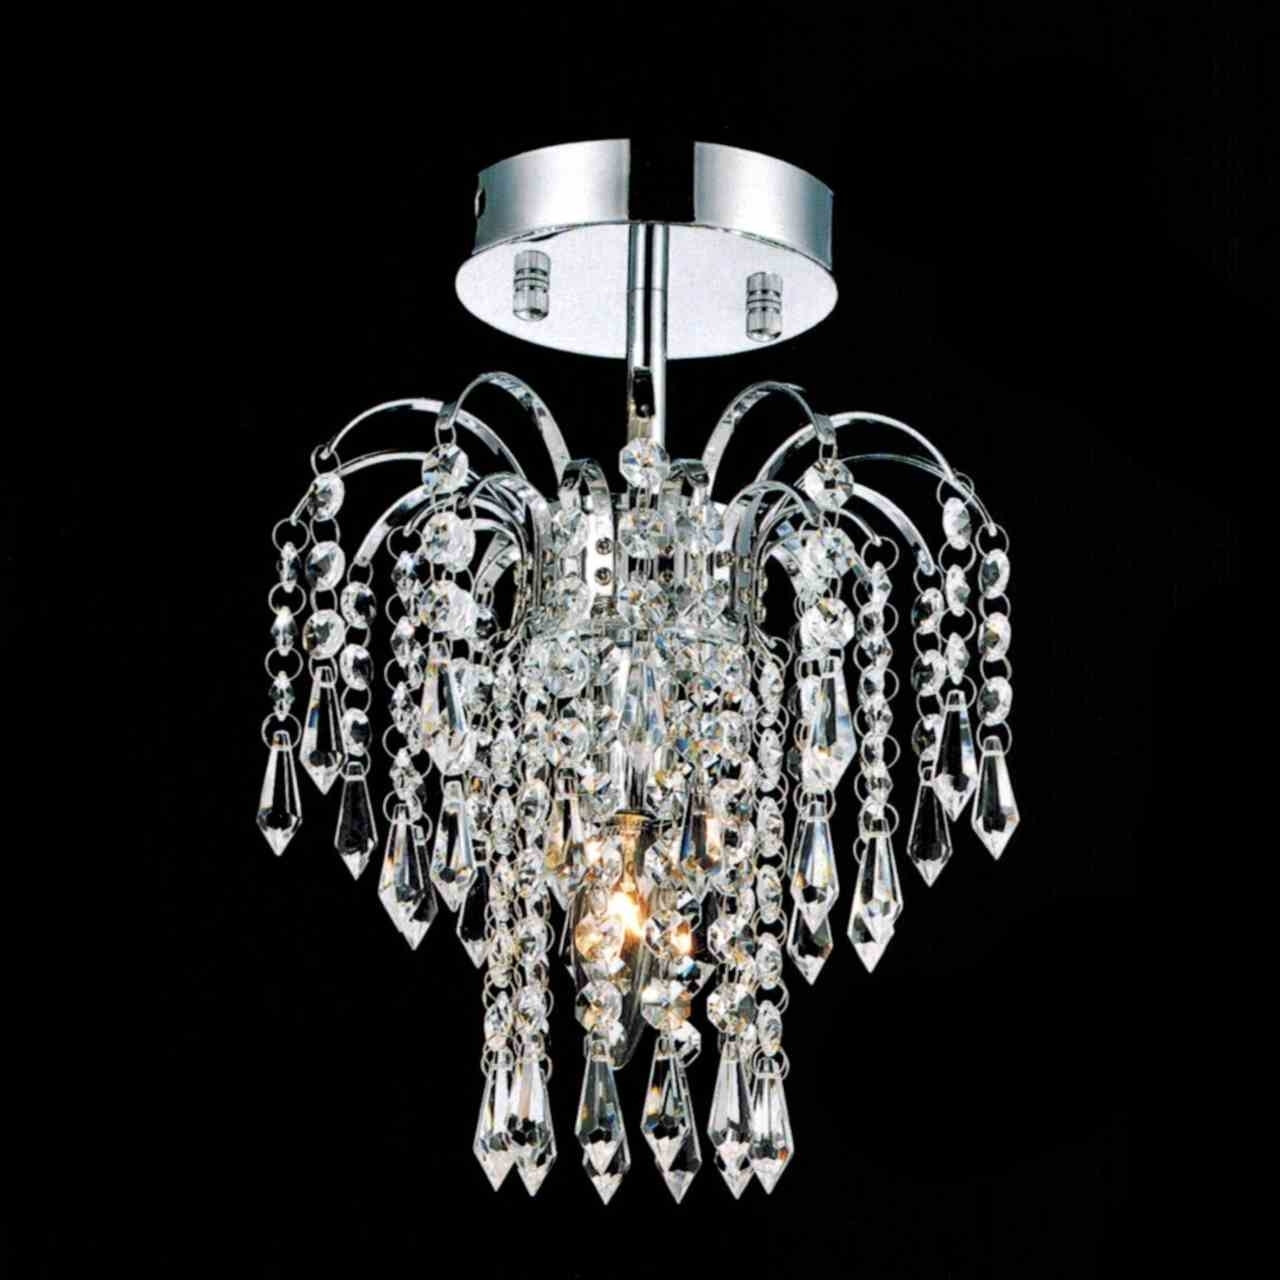 Small Chrome Chandelier Intended For Best And Newest Brizzo Lighting Stores (View 11 of 15)